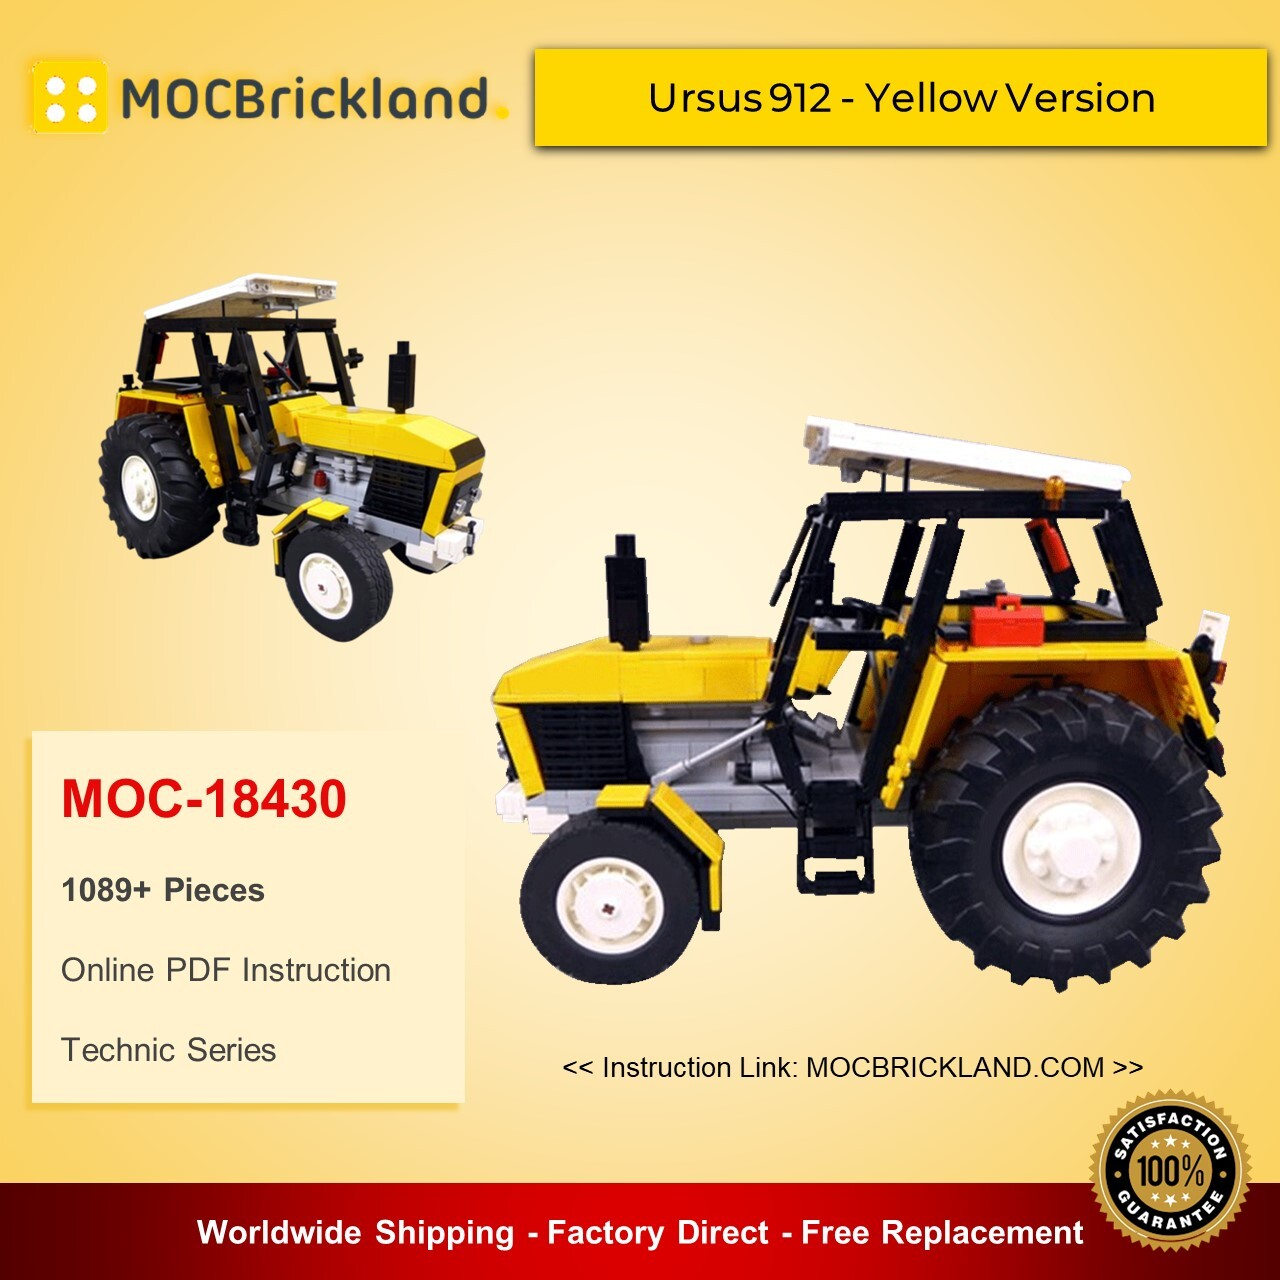 Technic moc-18430 ursus 912 - yellow version by m_longer mocbrickland